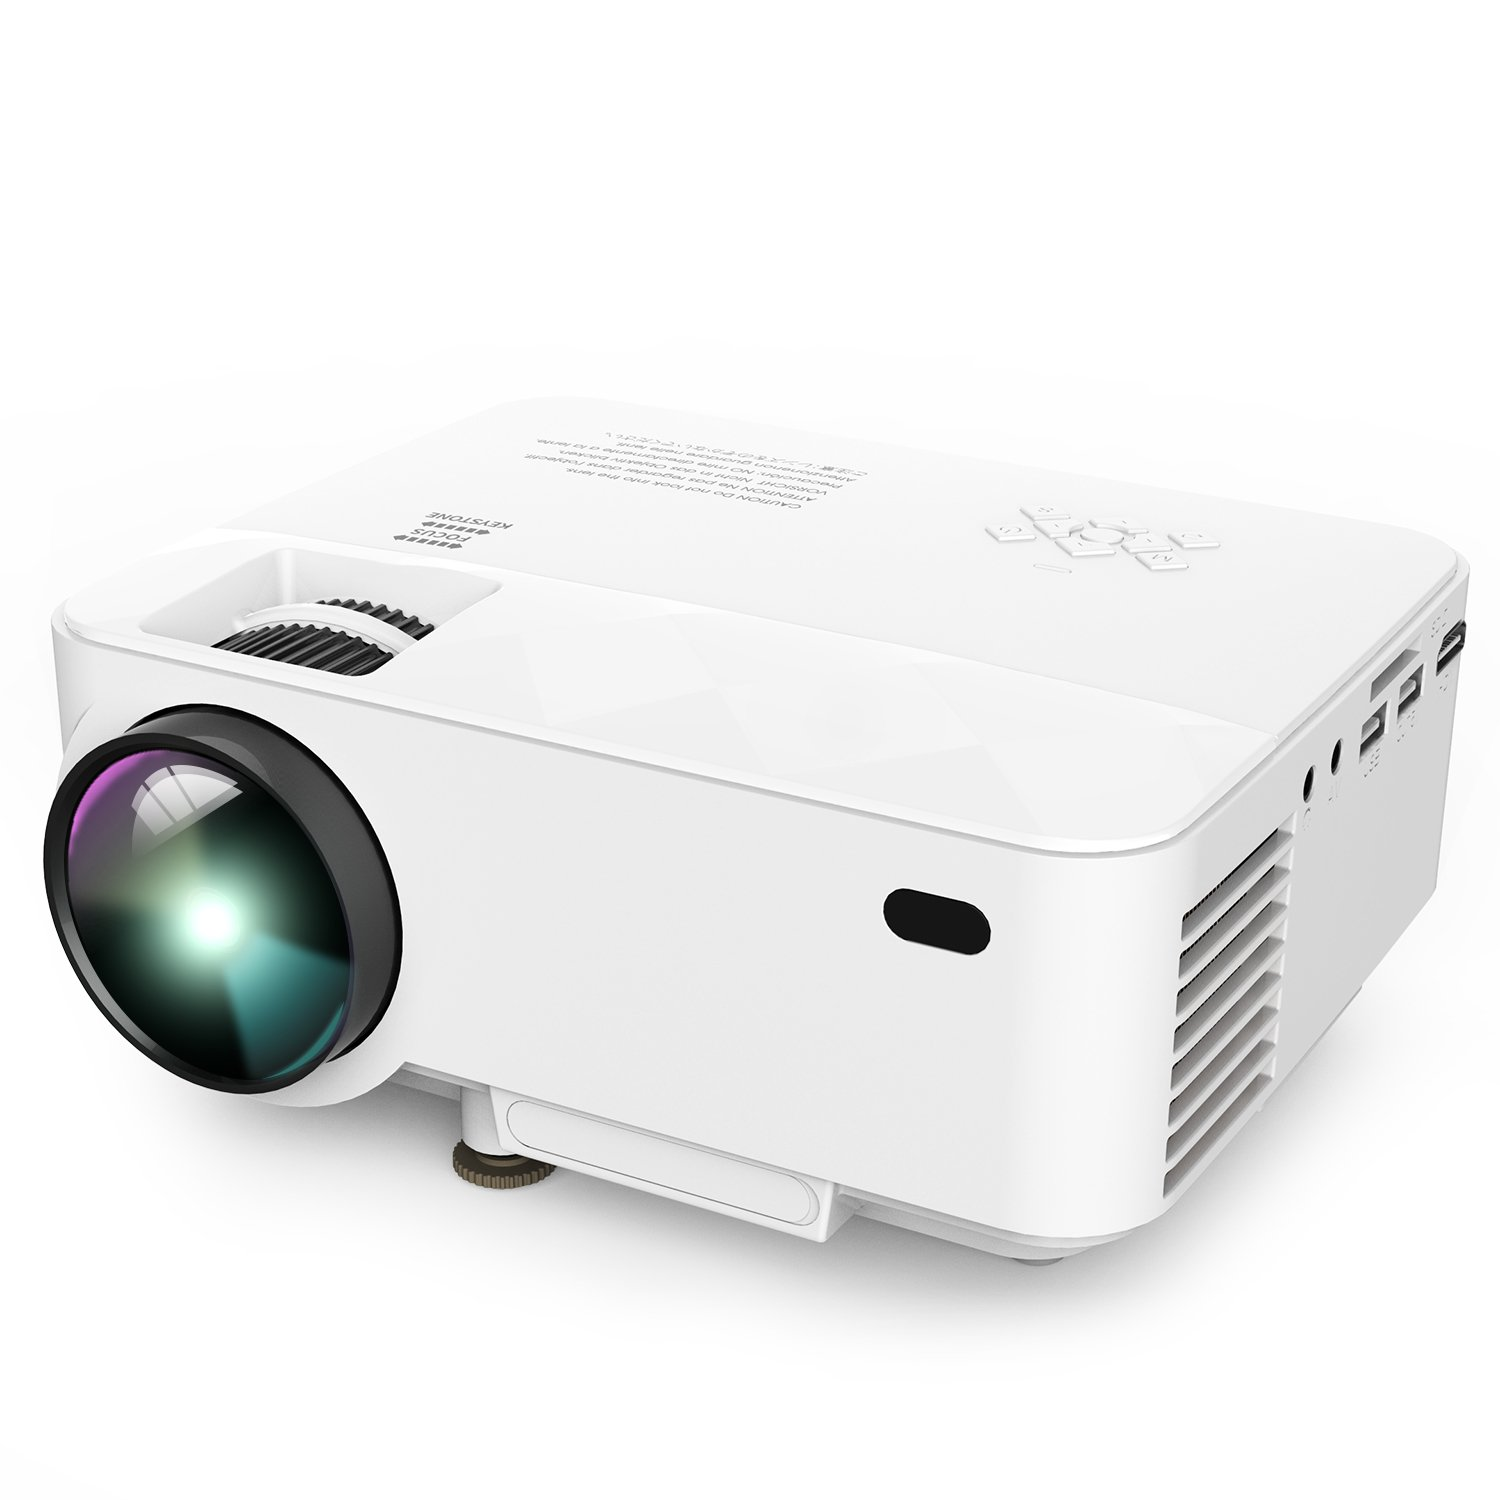 Projector, DBPOWER T21 Mini Projector with +10% Lumens Upgrade, Multimedia Home Theater Video Projector Support 1080P, HDMI, USB, SD Card, VGA, AV for Home Cinema, TV, Laptops, Game, Smartphone & iPad